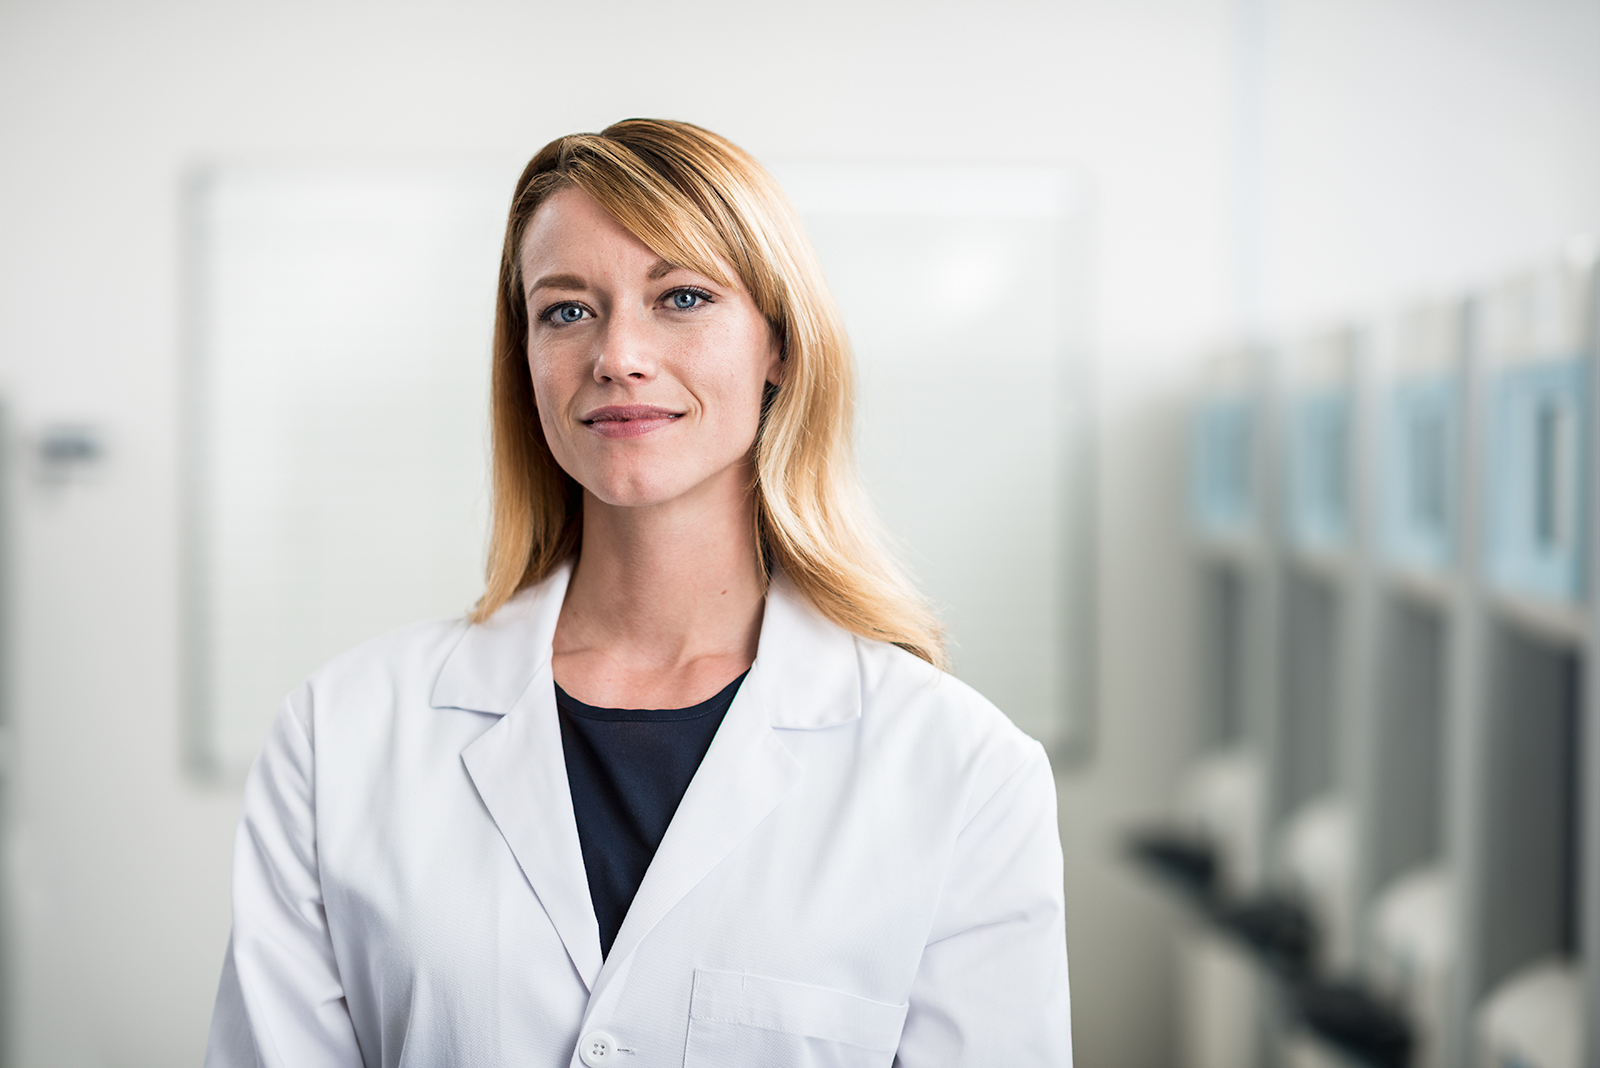 Woman in a medical lab coat